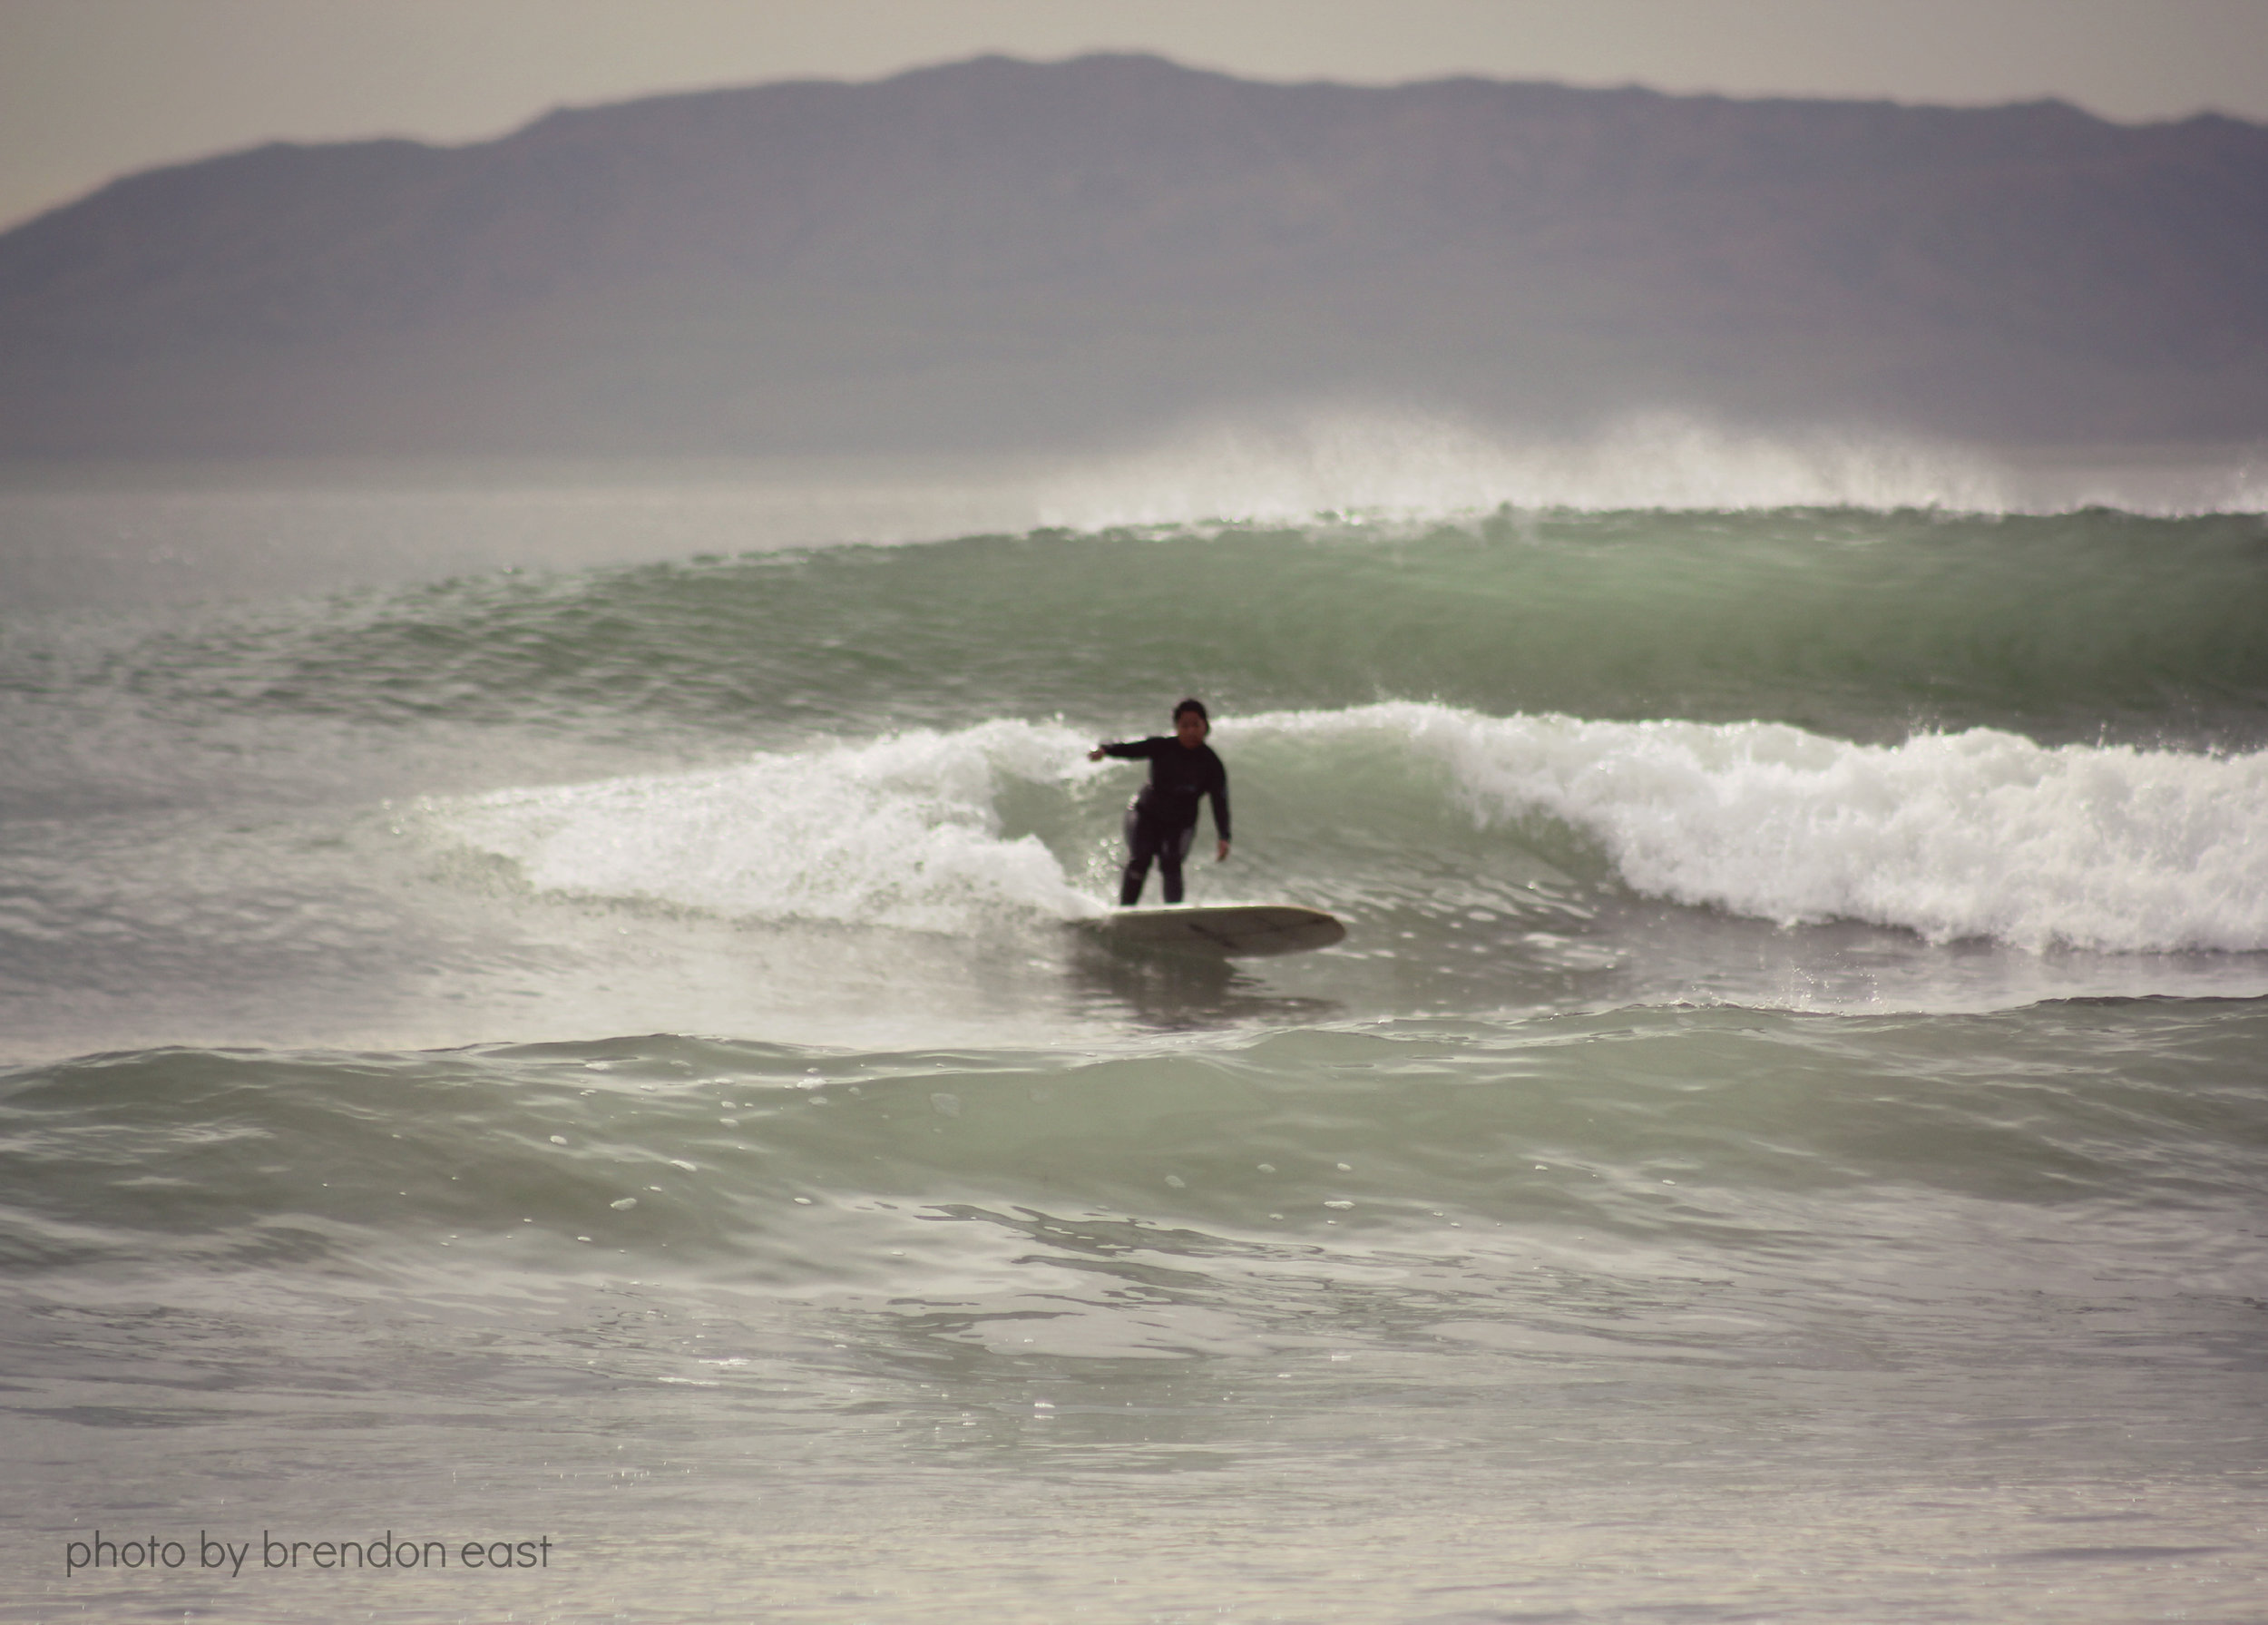 epic glassy day. desiree east. ventura, california. photo by brendon east